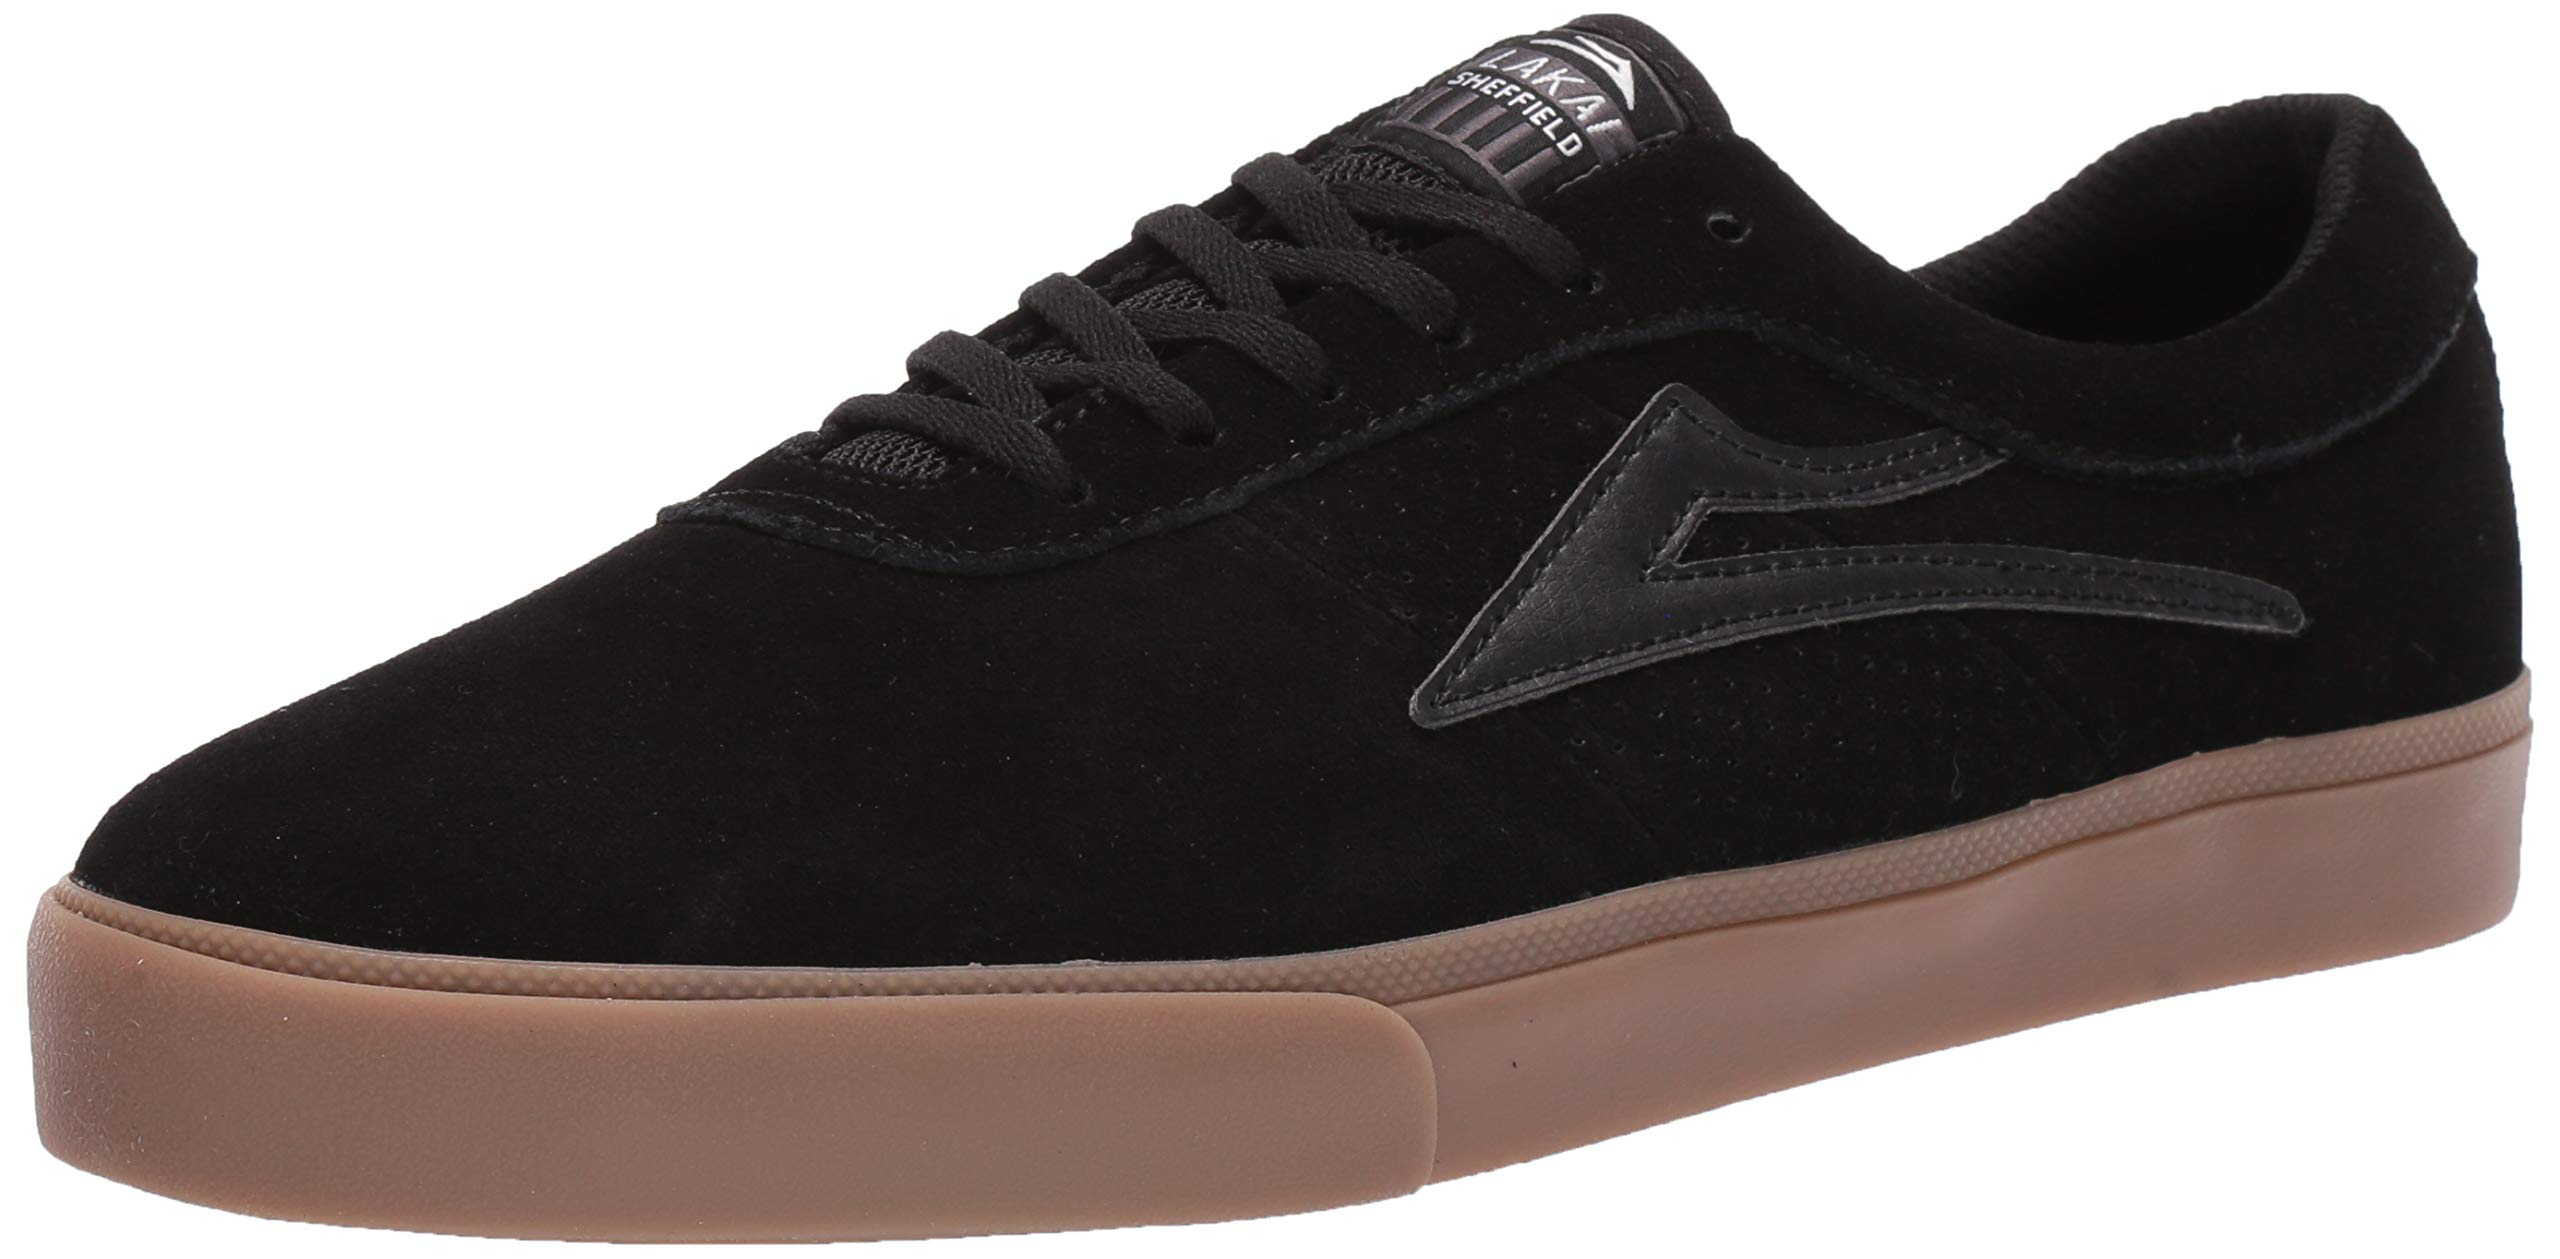 Lakai Limited Footwear Mens Sheffield Skate Shoe, Black/Gum Suede, 11.5 M US by Lakai Limited Footwear Mens